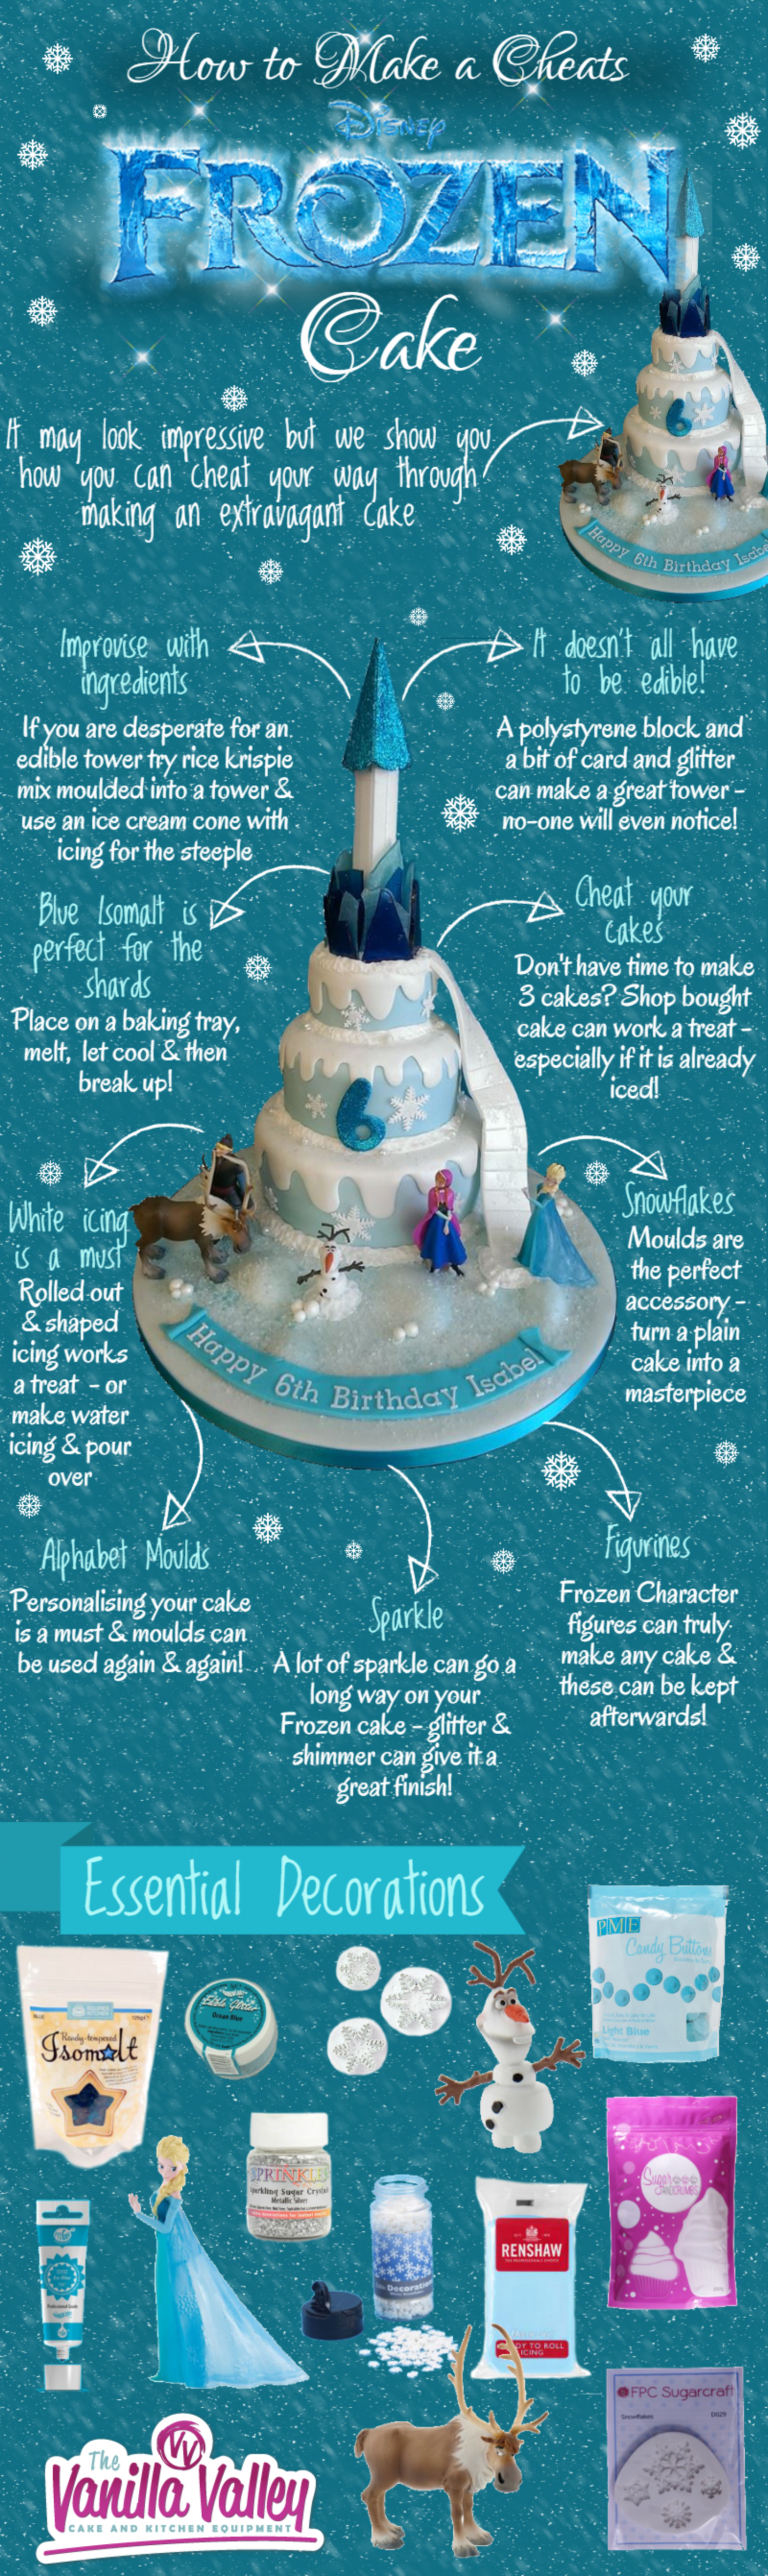 How to make a Cheats Frozen Cake Infographic